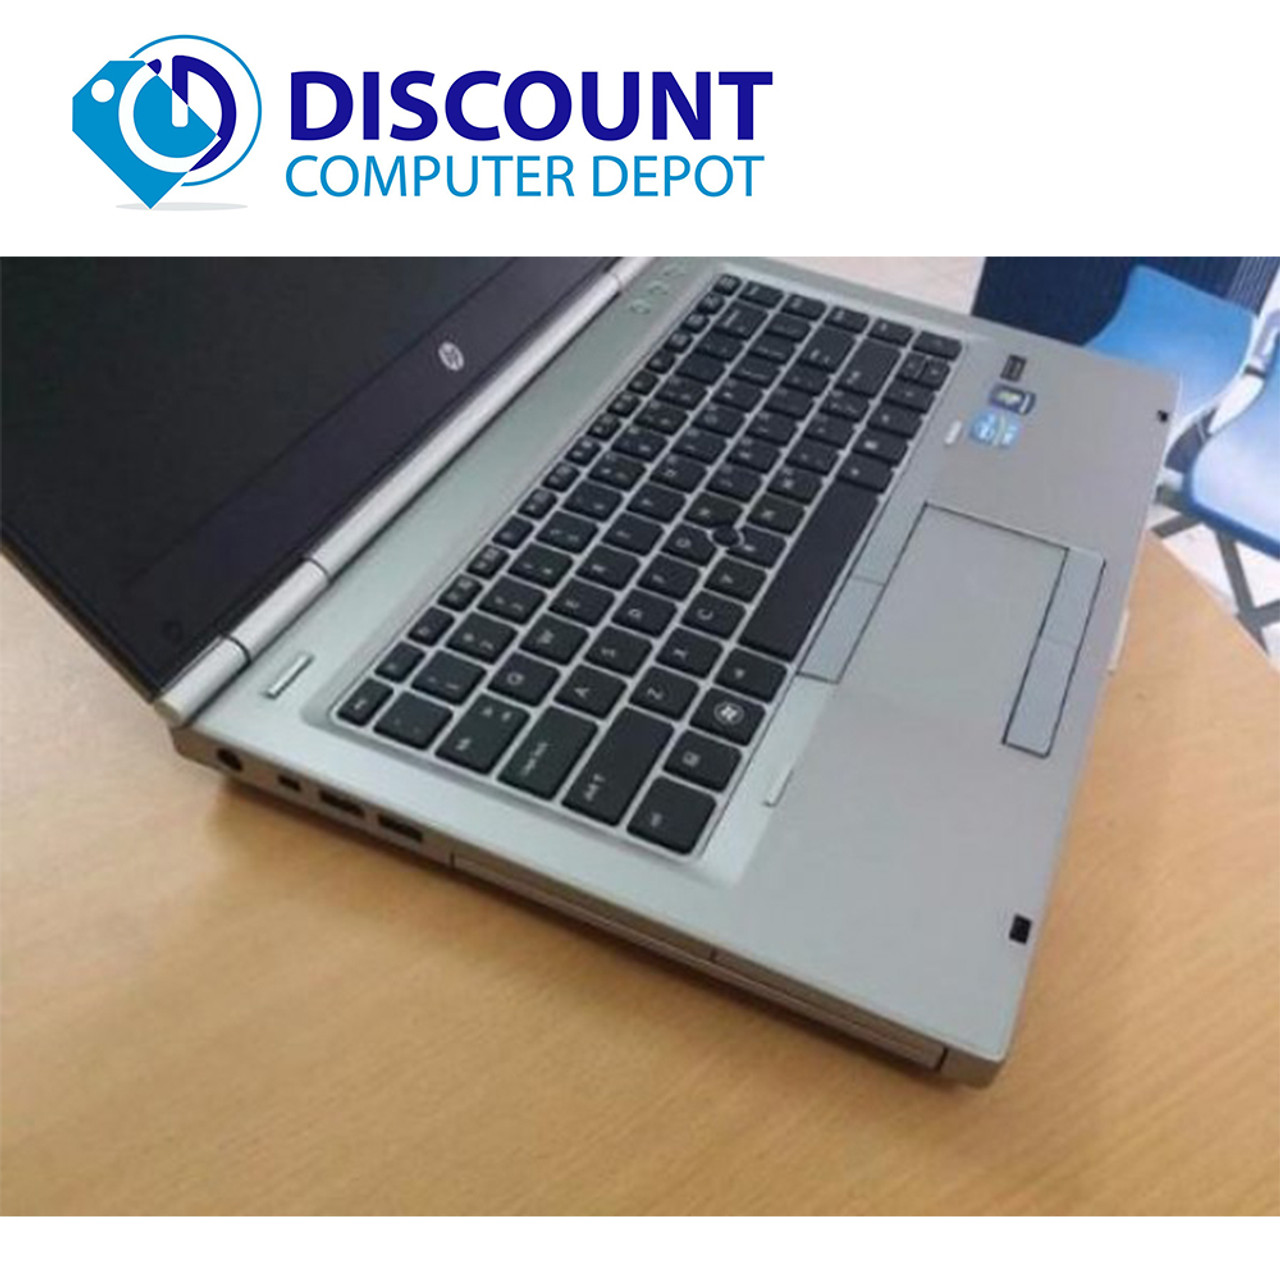 HP Elitebook Windows 10 Pro Laptop Notebook PC i5 3rd Gen 2 6GHz 4GB 320GB  and WIFI